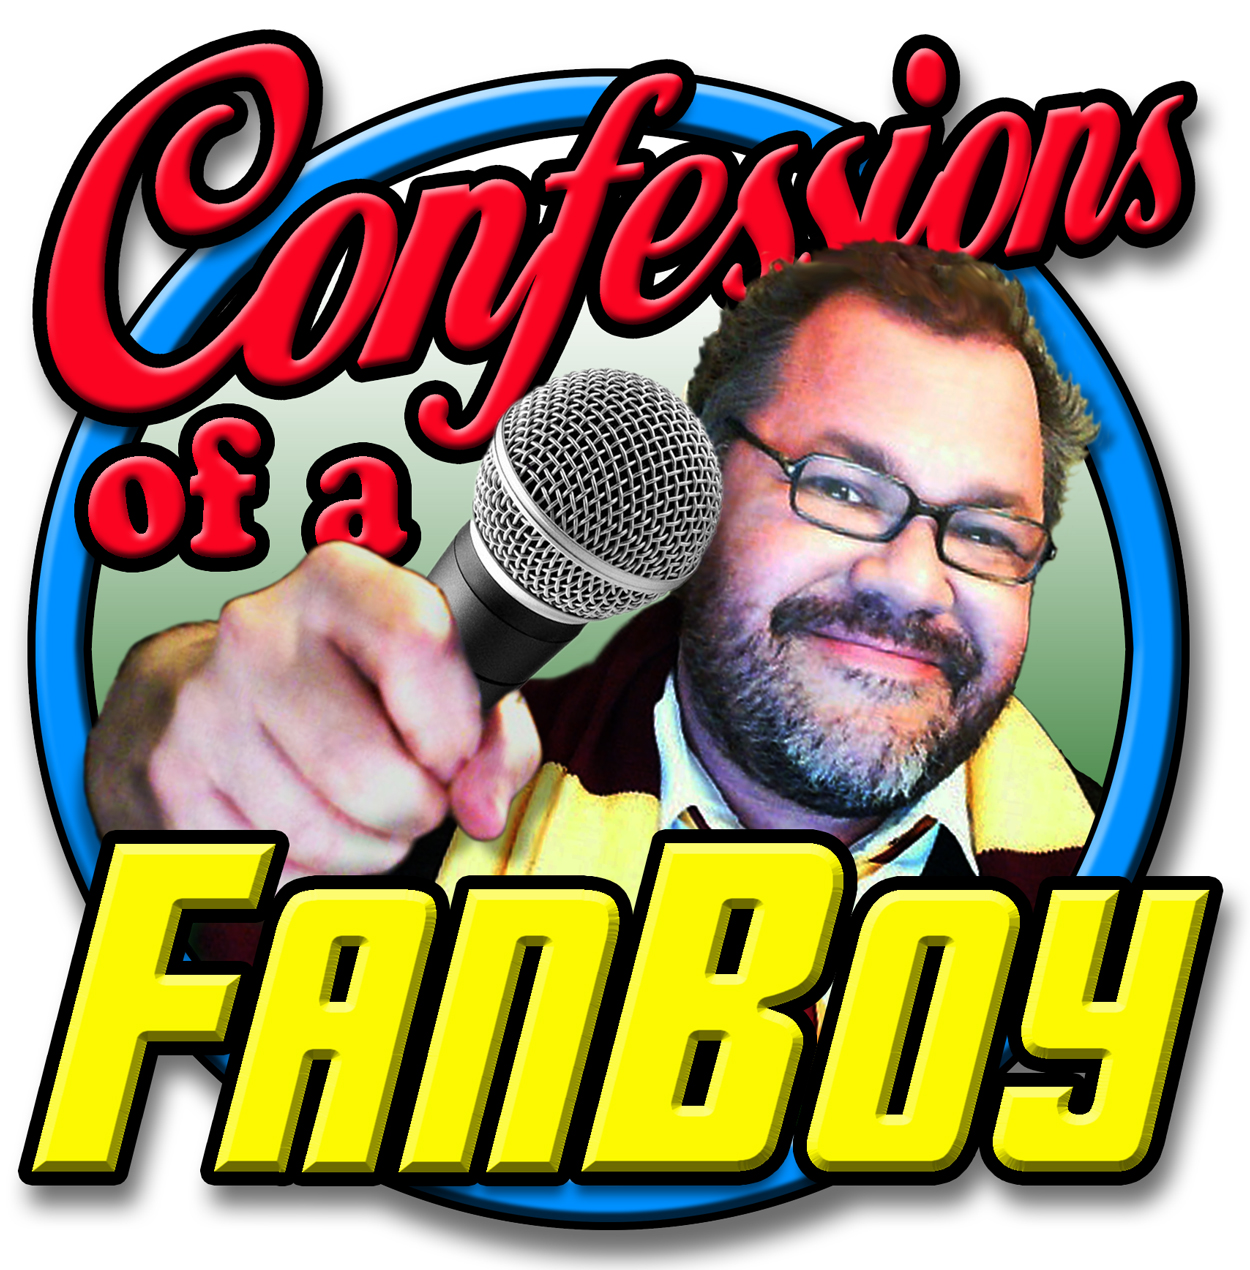 Confessions of a Fanboy